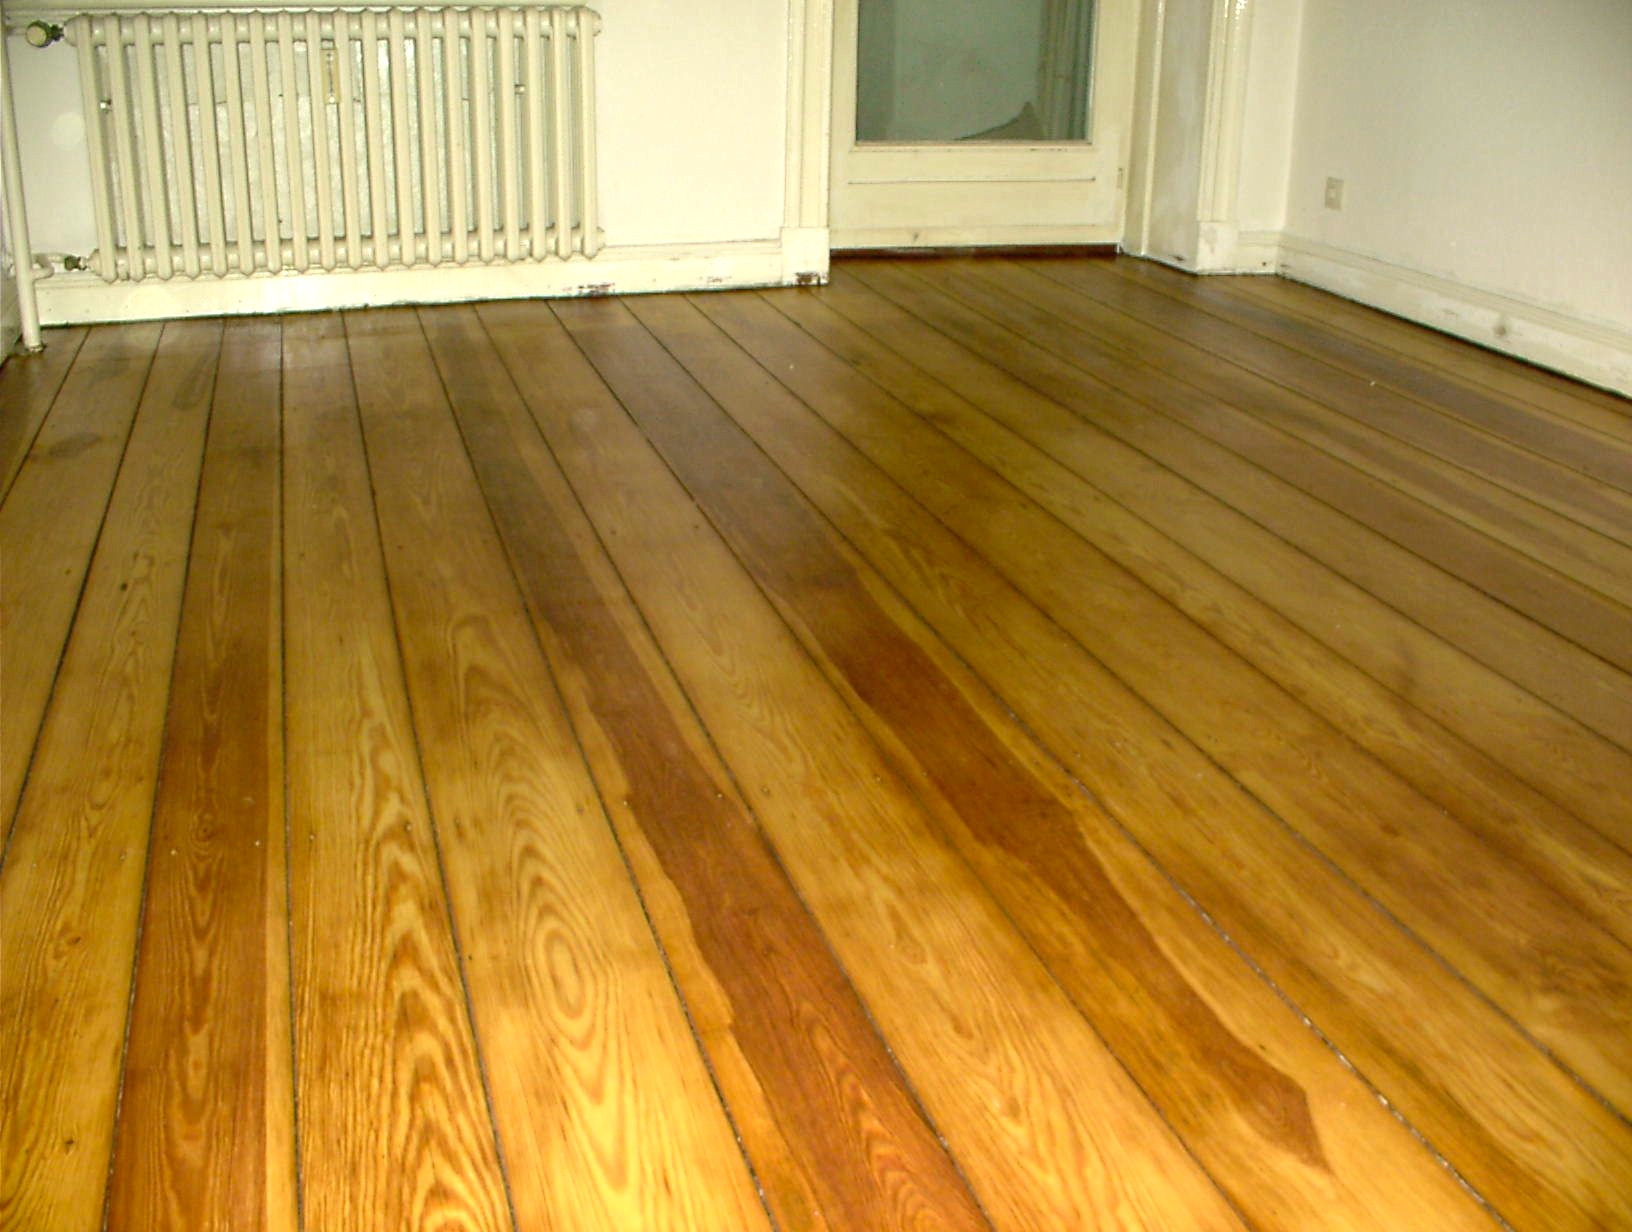 Sanding floorboards, Le Tonkinois high polish